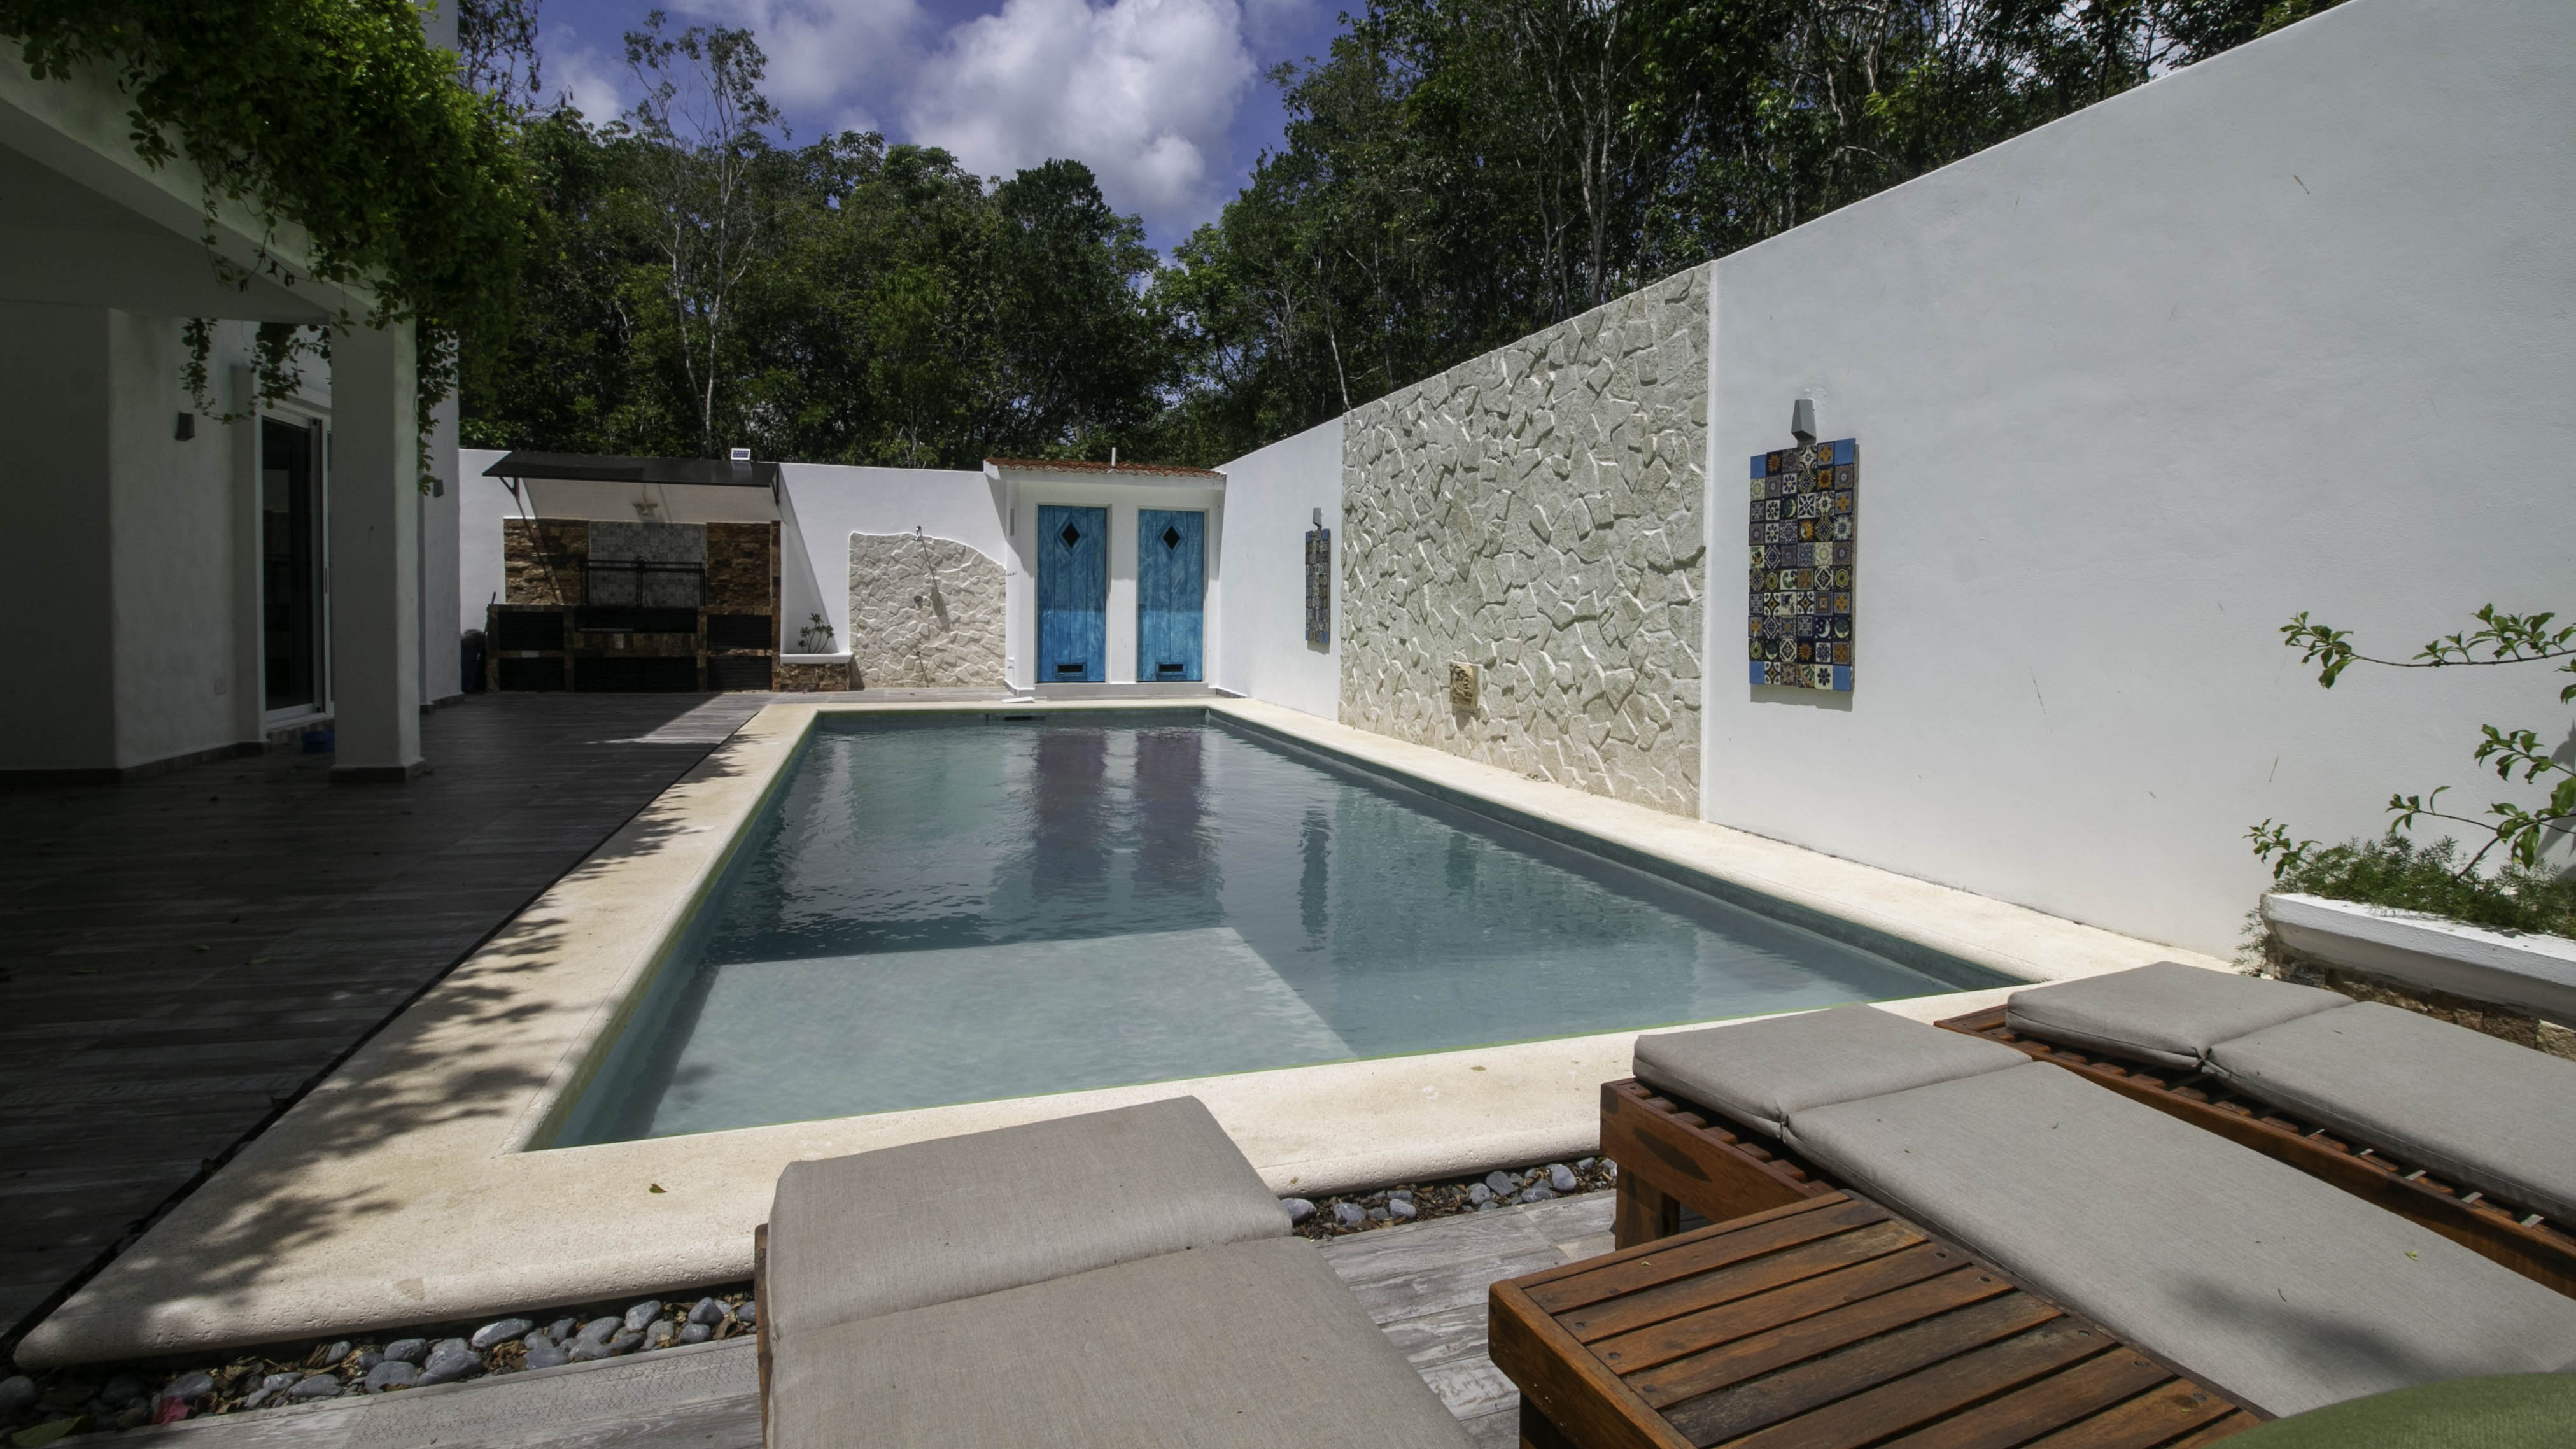 4-bedroom-house-in-a-gated-community-in-Tulum-Pool